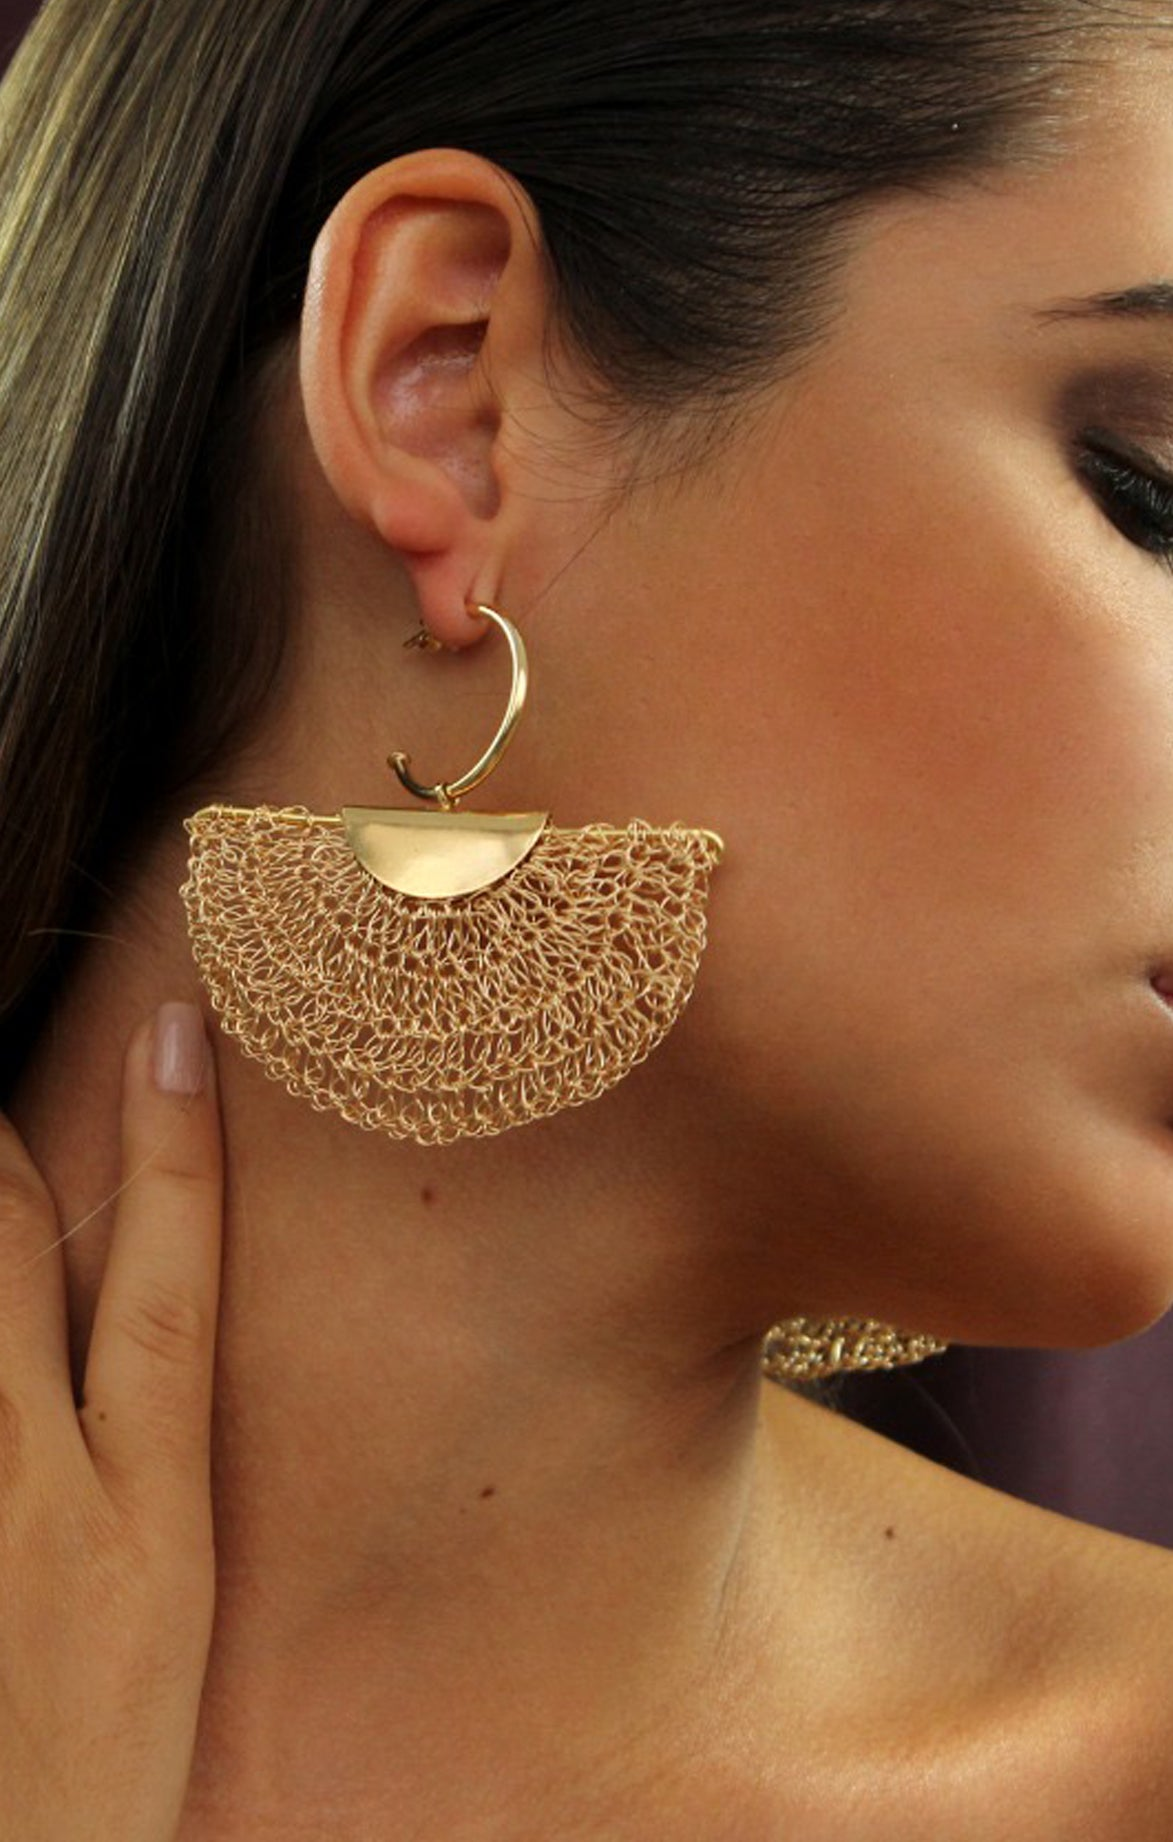 Gacata Earrings